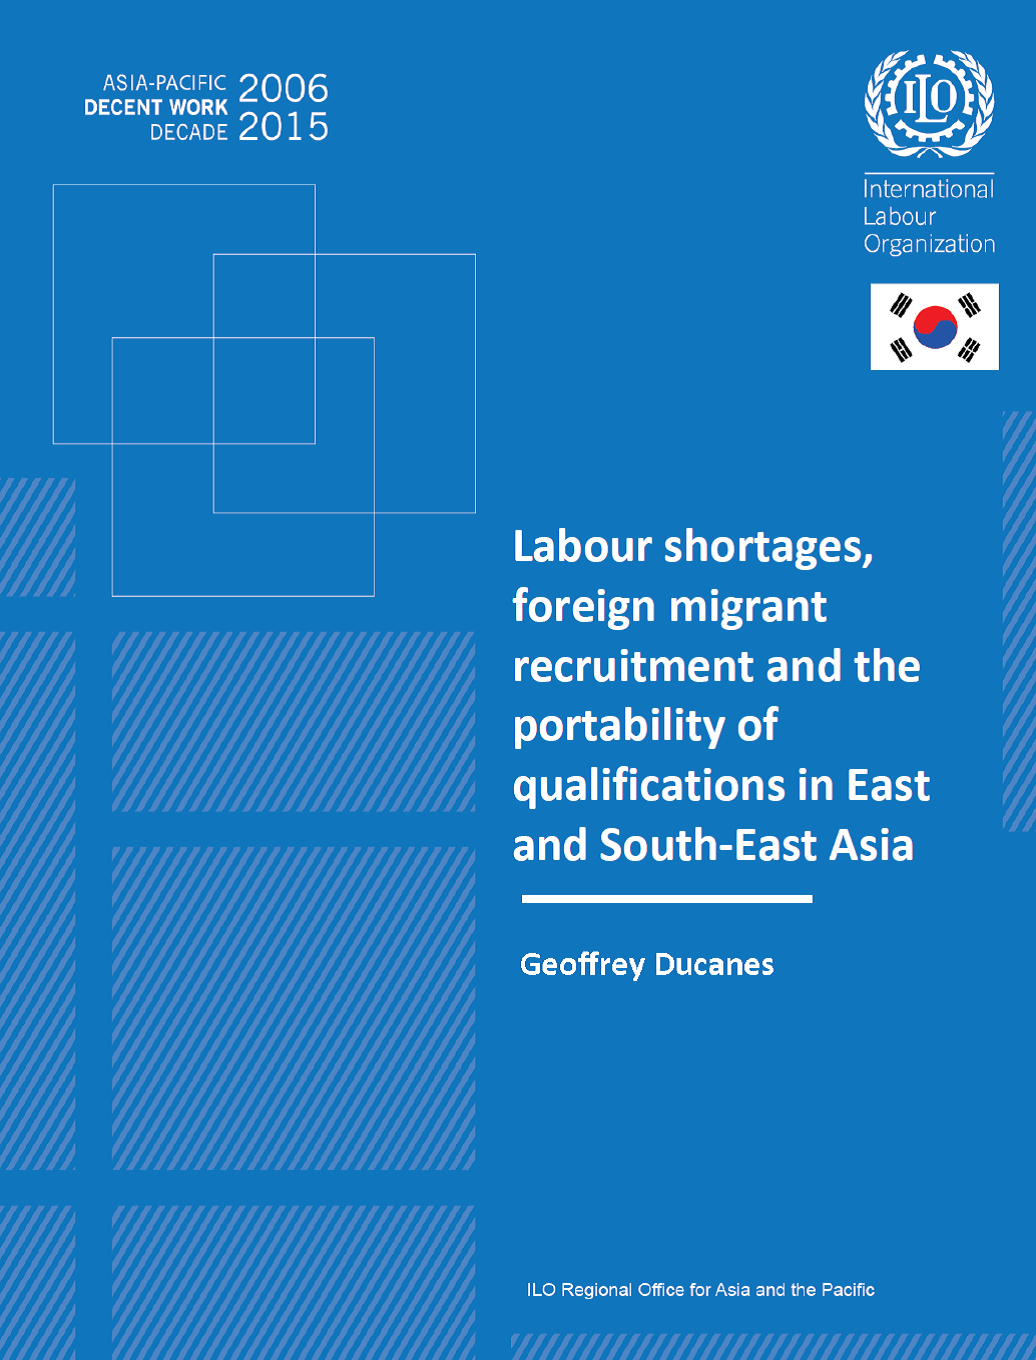 Labour shortages, foreign migrant recruitment and the portability of qualifications in East and South-East Asia